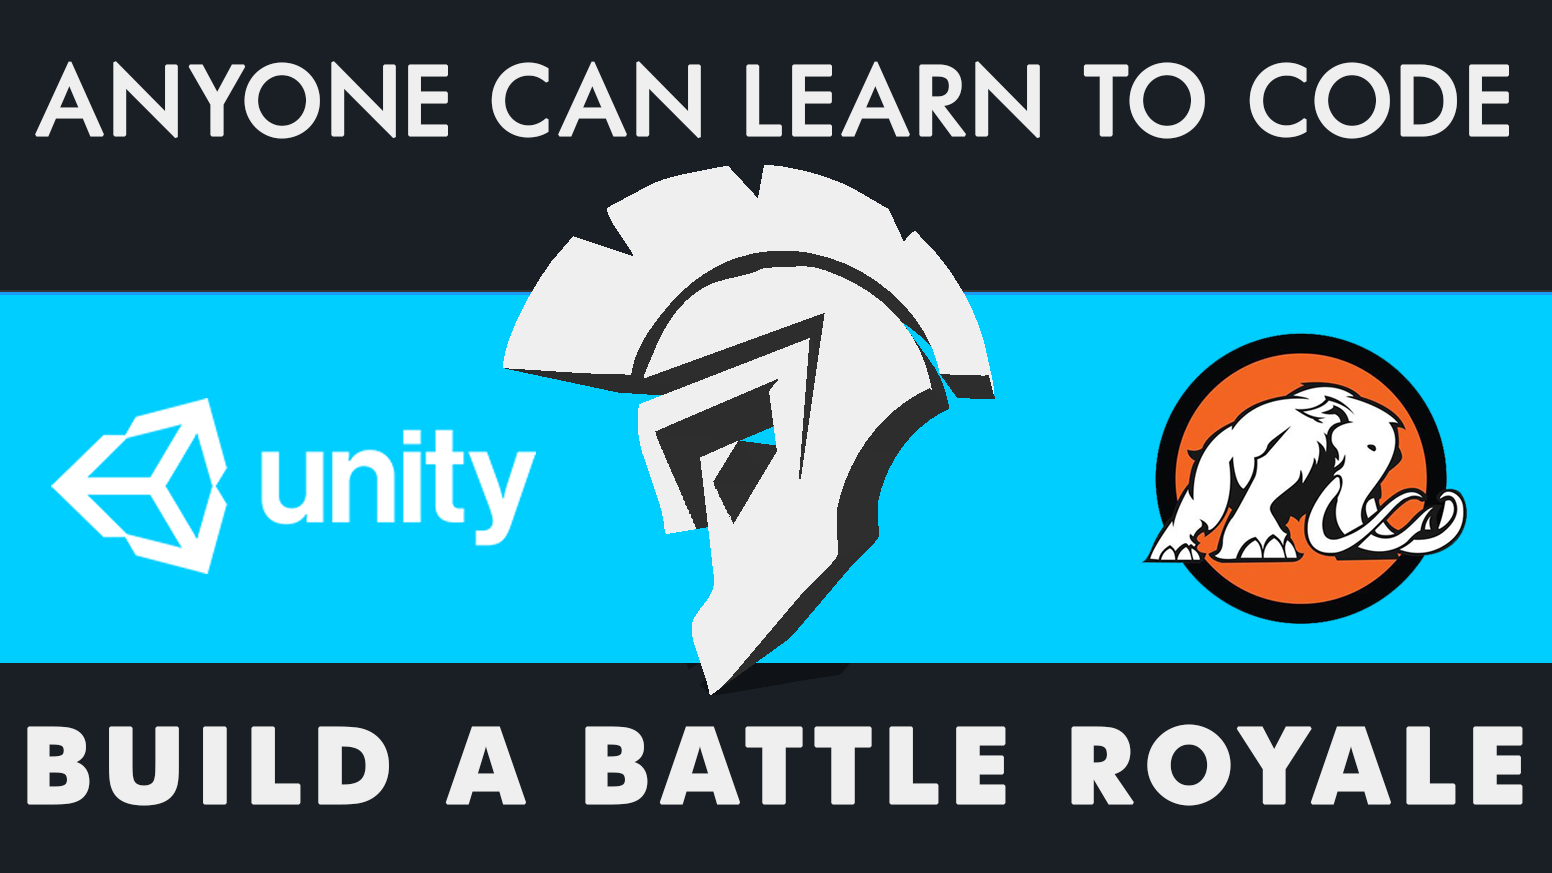 Anyone Can Make a Video Game! Build a Battle Royale with Unity and